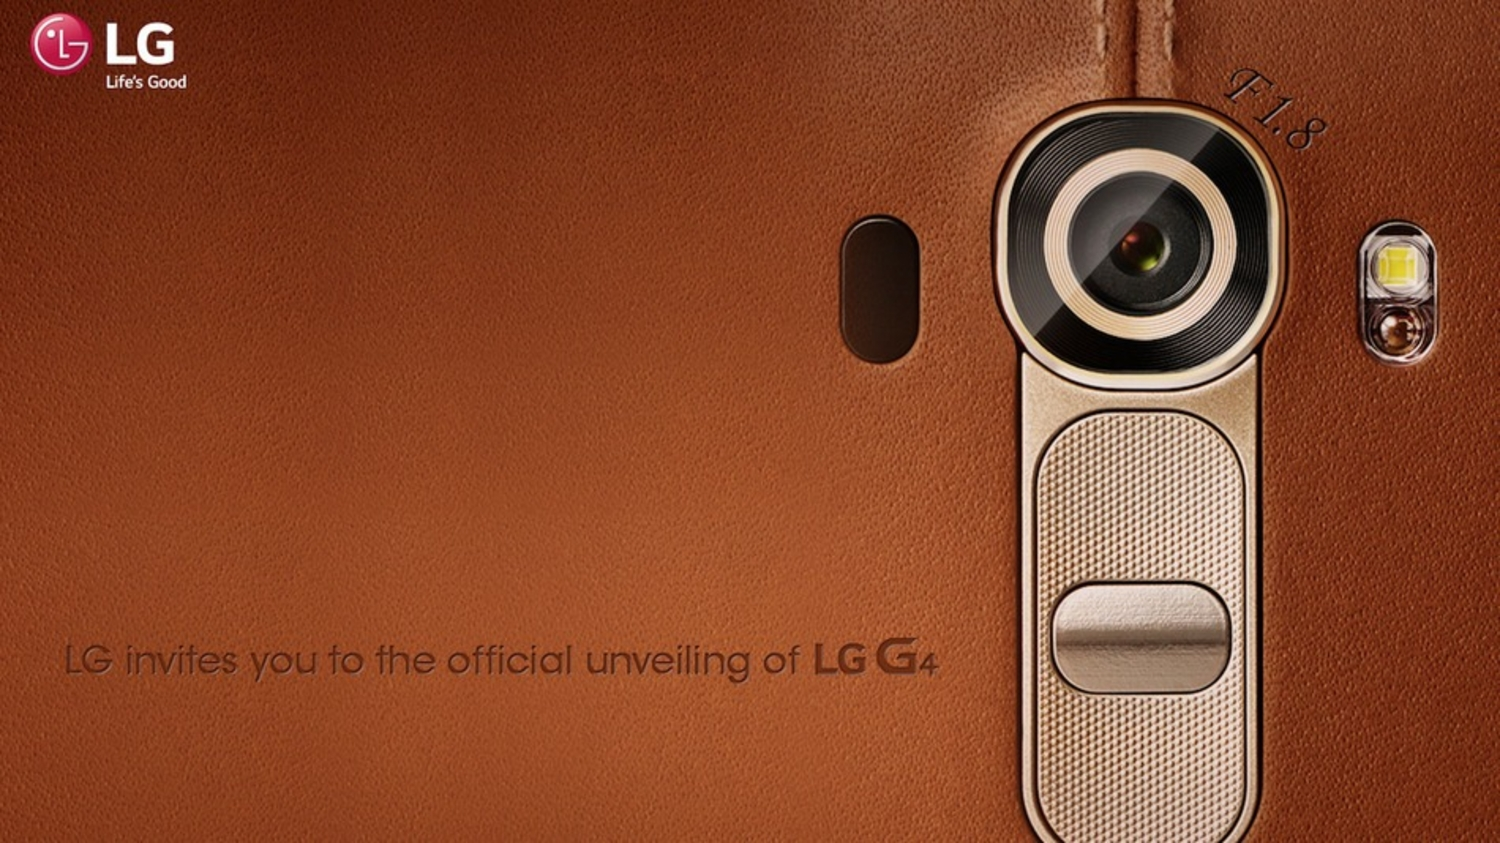 The Four Things Happening For The G4